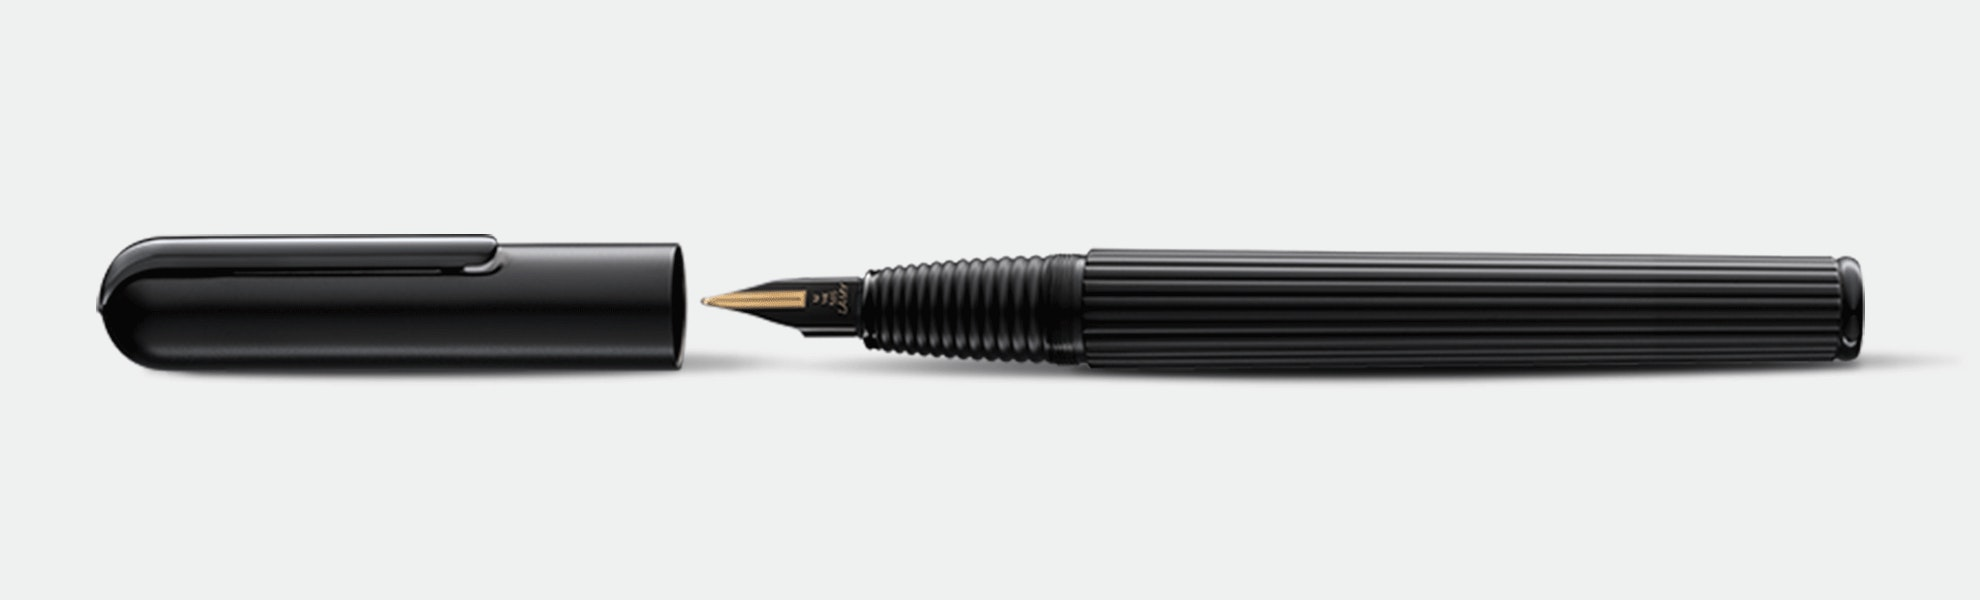 LAMY Imporium Black/Black Fountain Pen